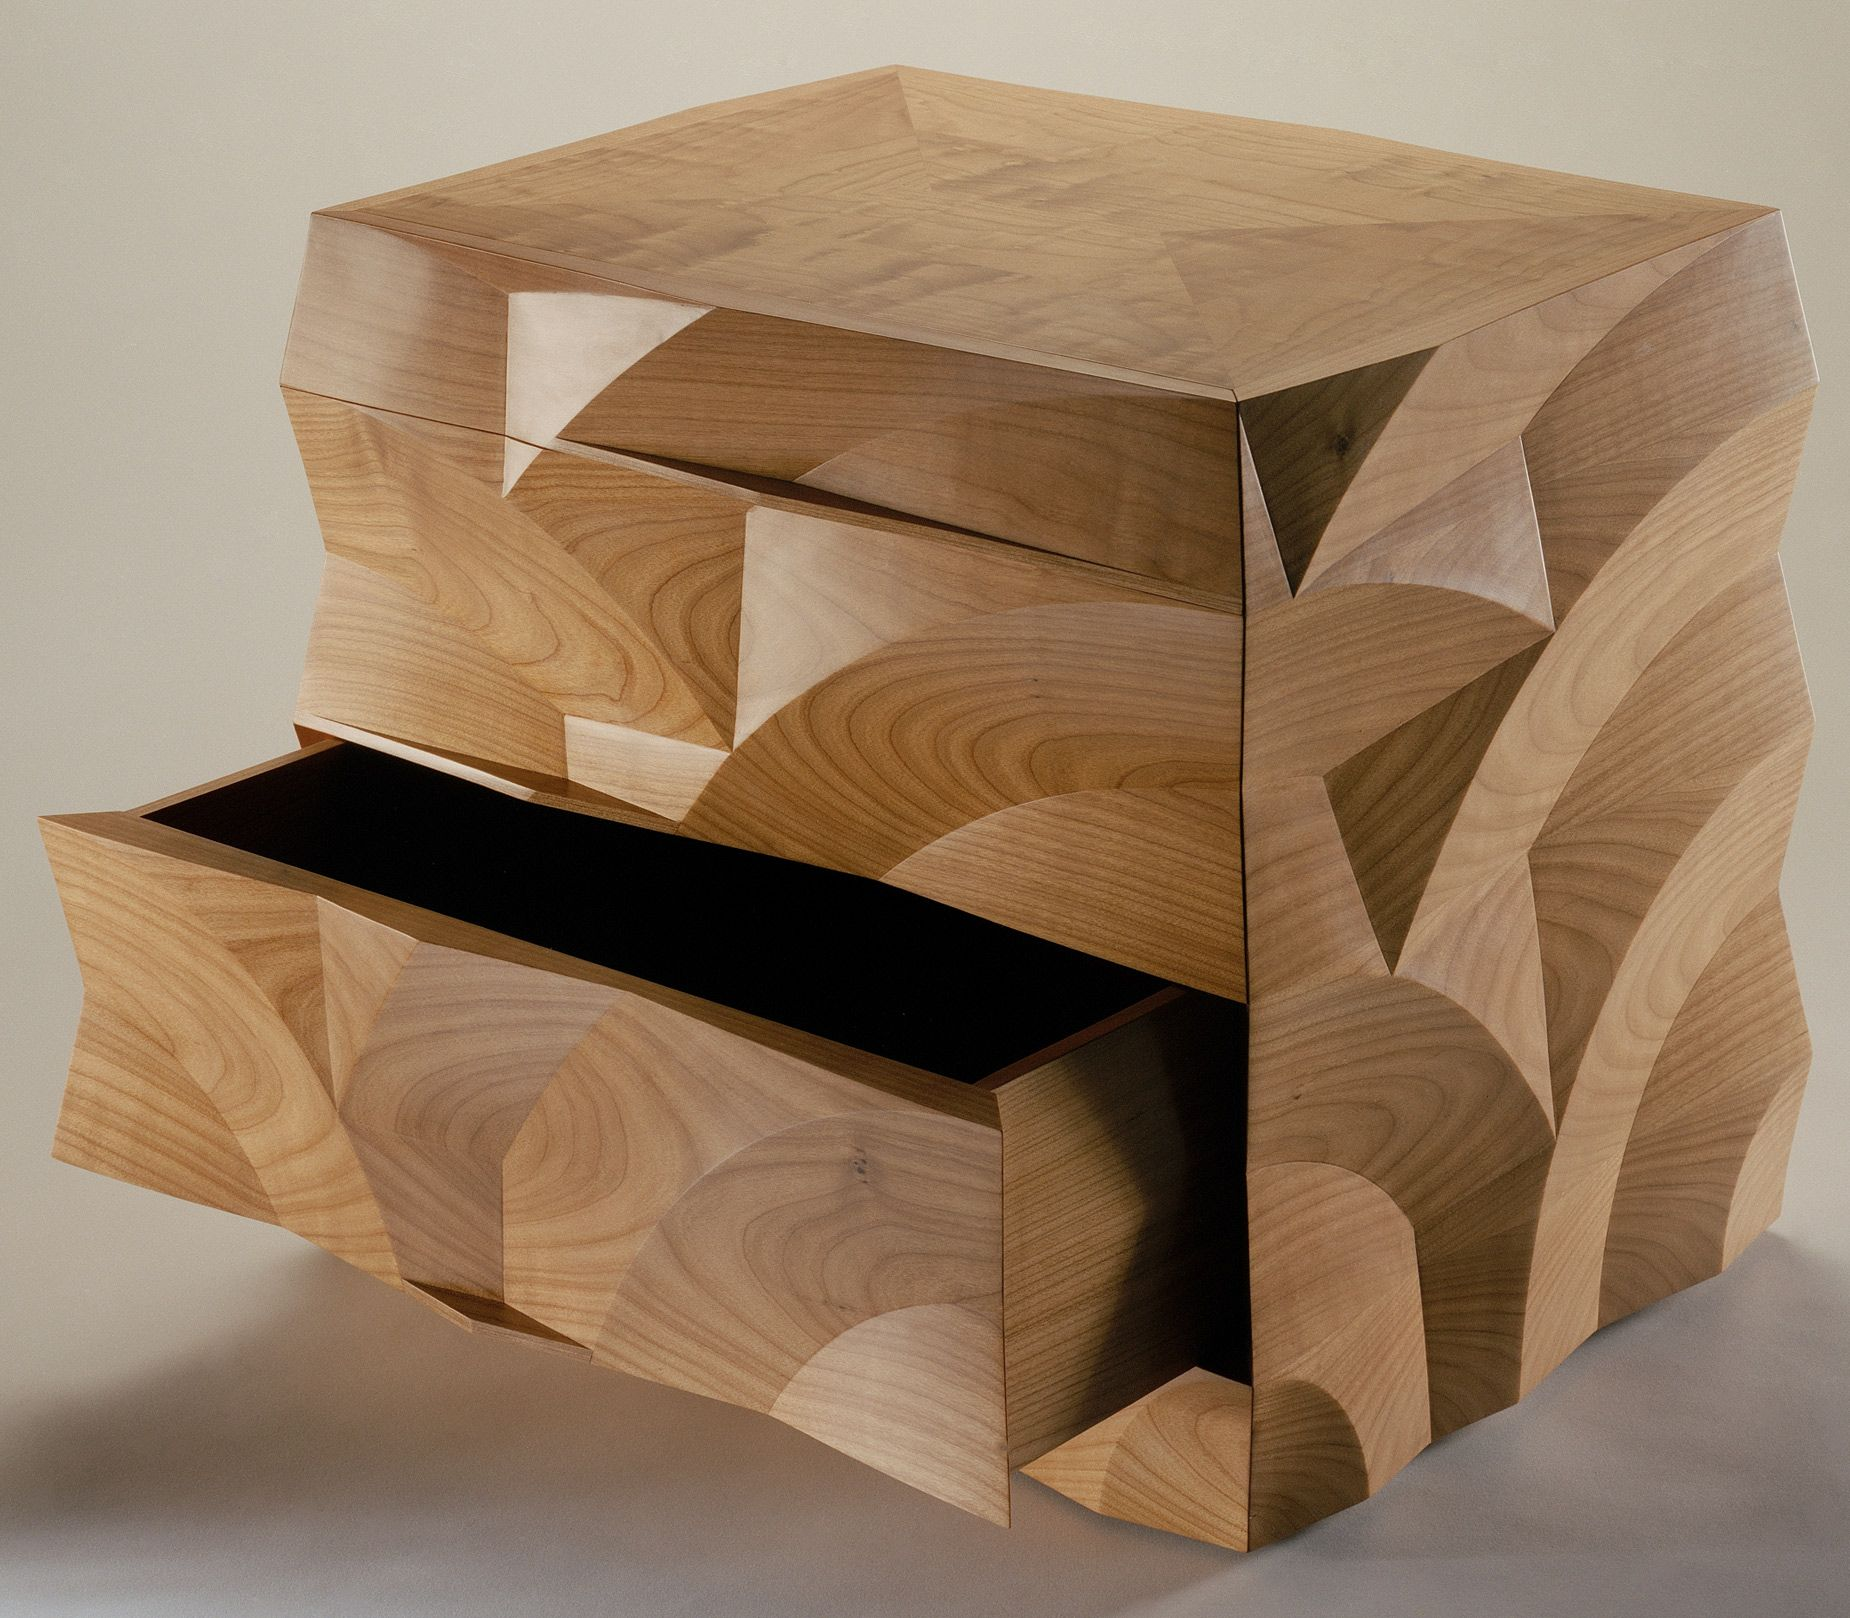 John makepeace furniture designer and maker 39 arcade 39 chest furniture pinterest Beautiful wooden furniture